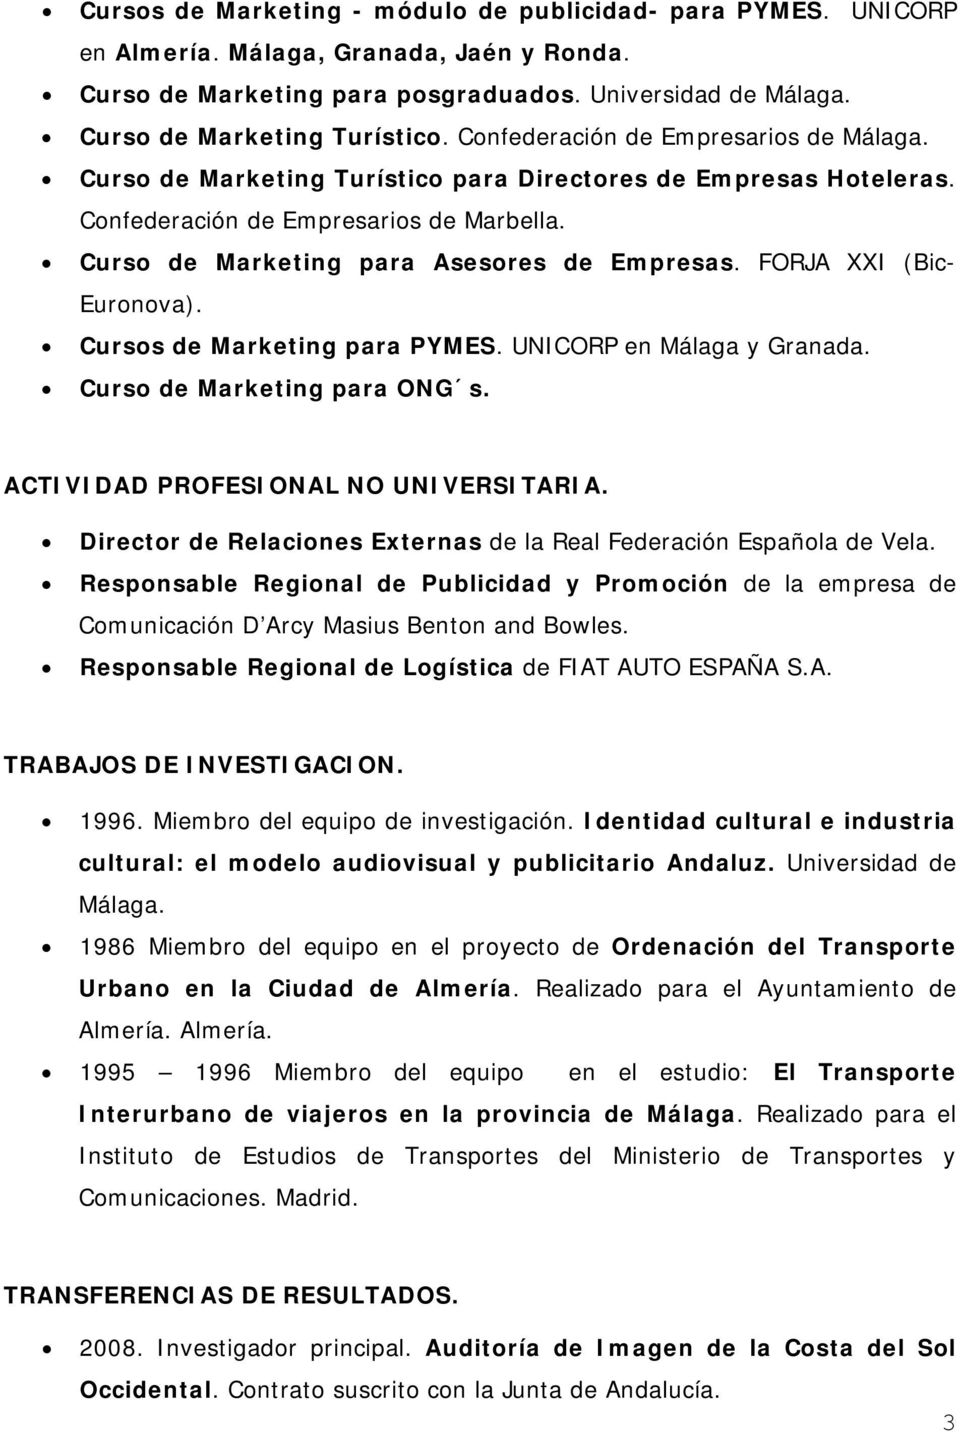 FORJA XXI (Bic- Euronova). Cursos de Marketing para PYMES. UNICORP en Málaga y Granada. Curso de Marketing para ONG s. ACTIVIDAD PROFESIONAL NO UNIVERSITARIA.